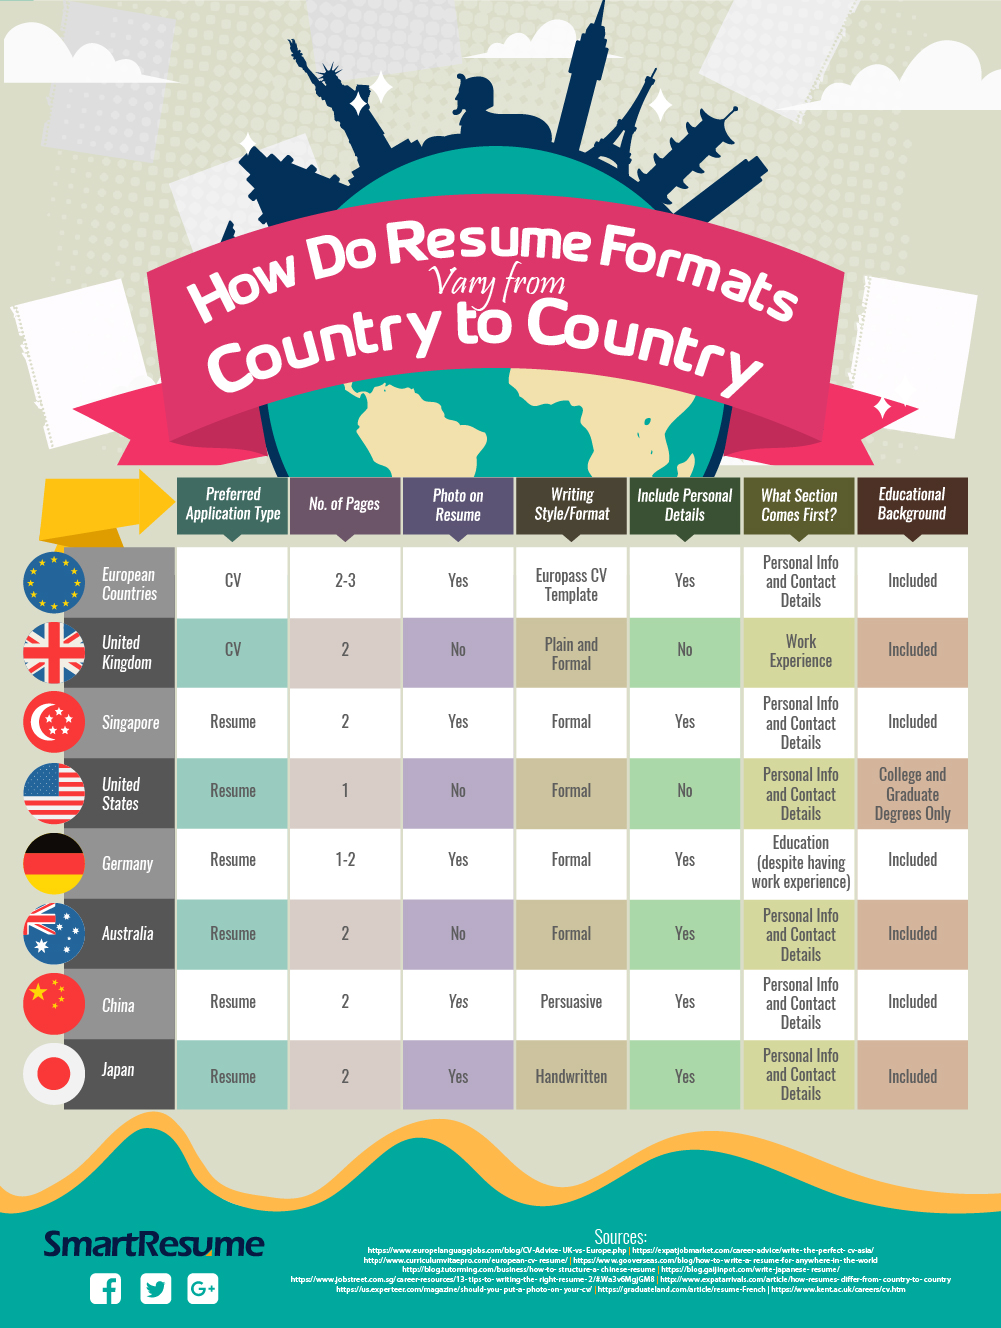 Resume Formats In Various Countries How Do They Differ